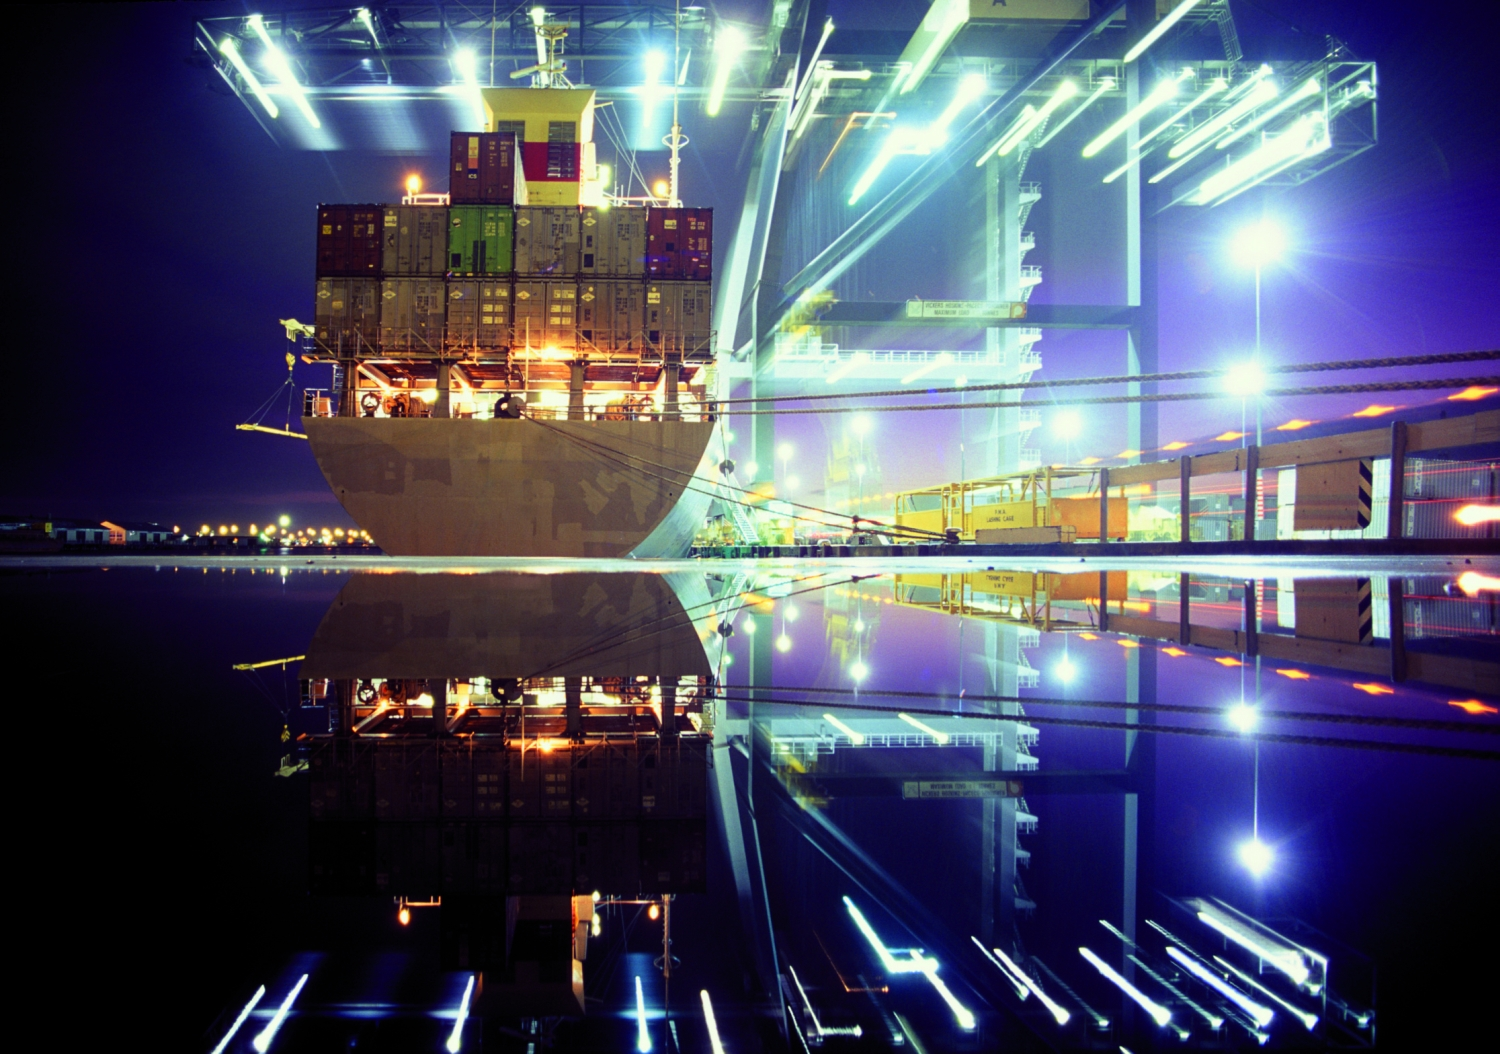 container-vessel-by-night-21